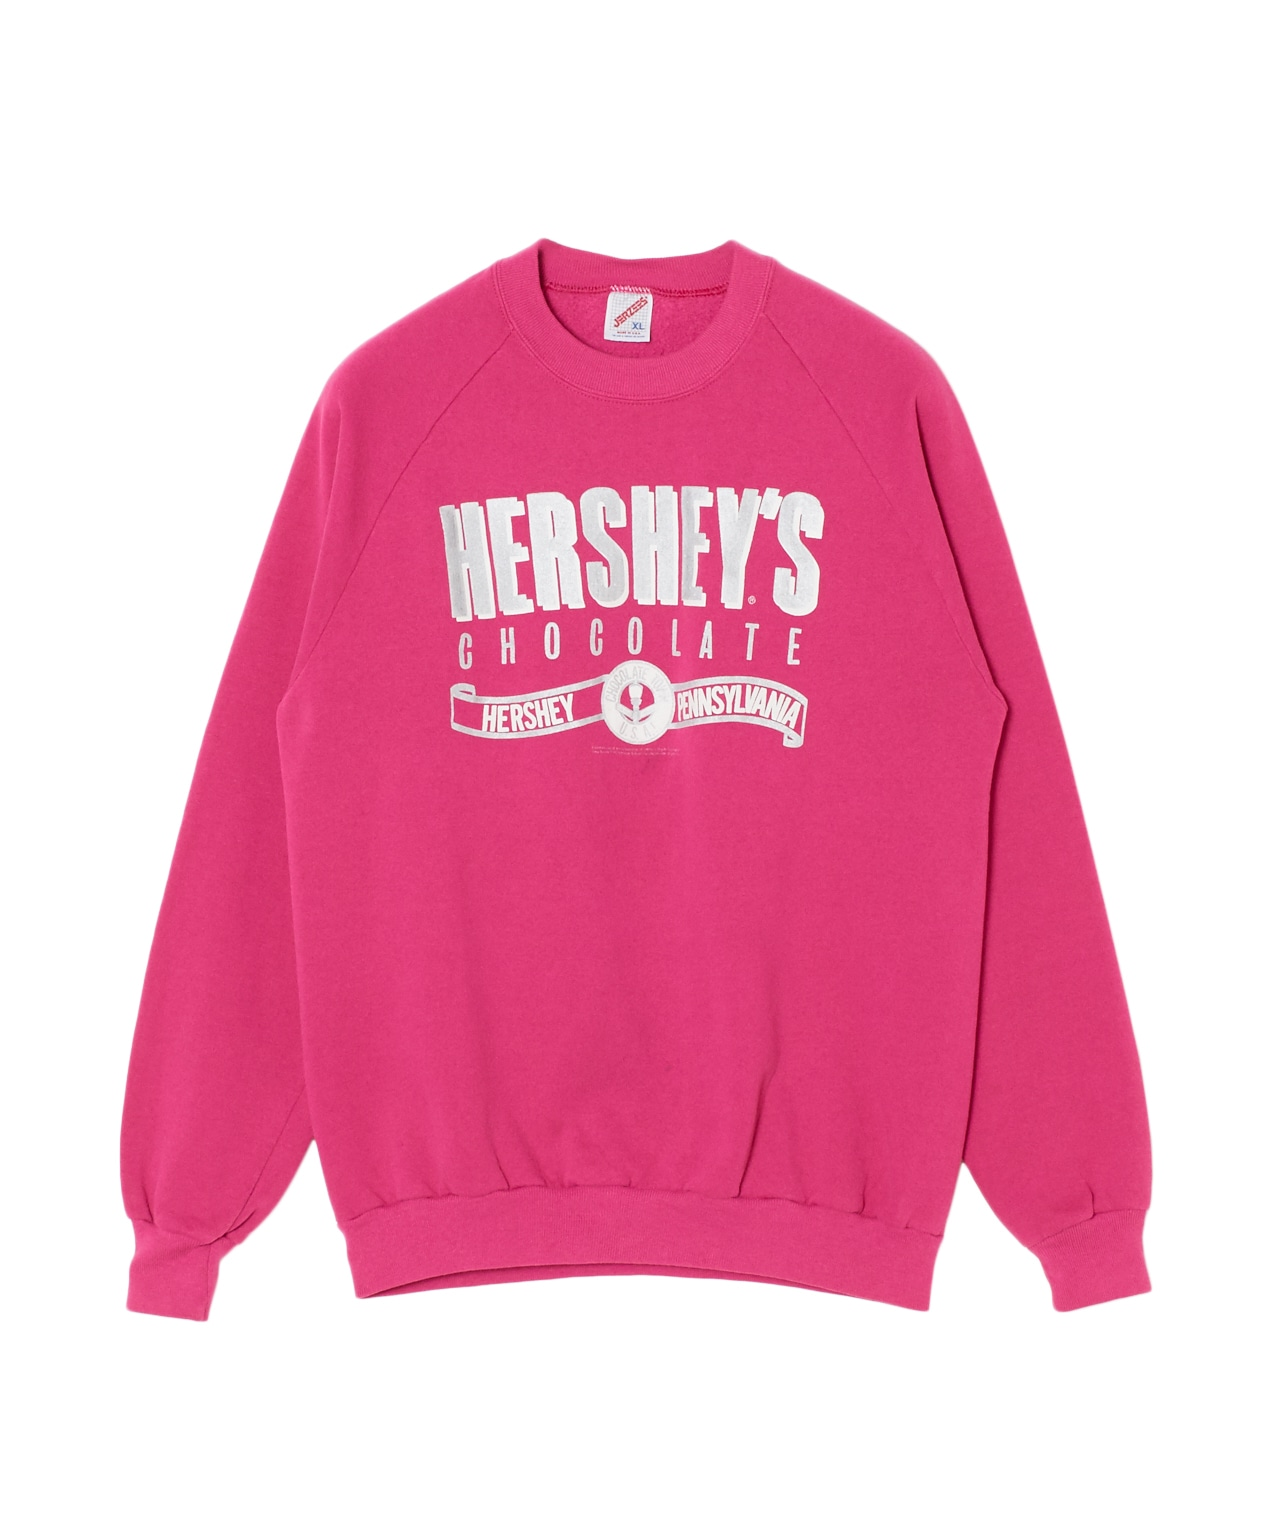 "USED/""HERSHEY'S CHOCOLATE""スウェット 詳細画像 ピンク 1"